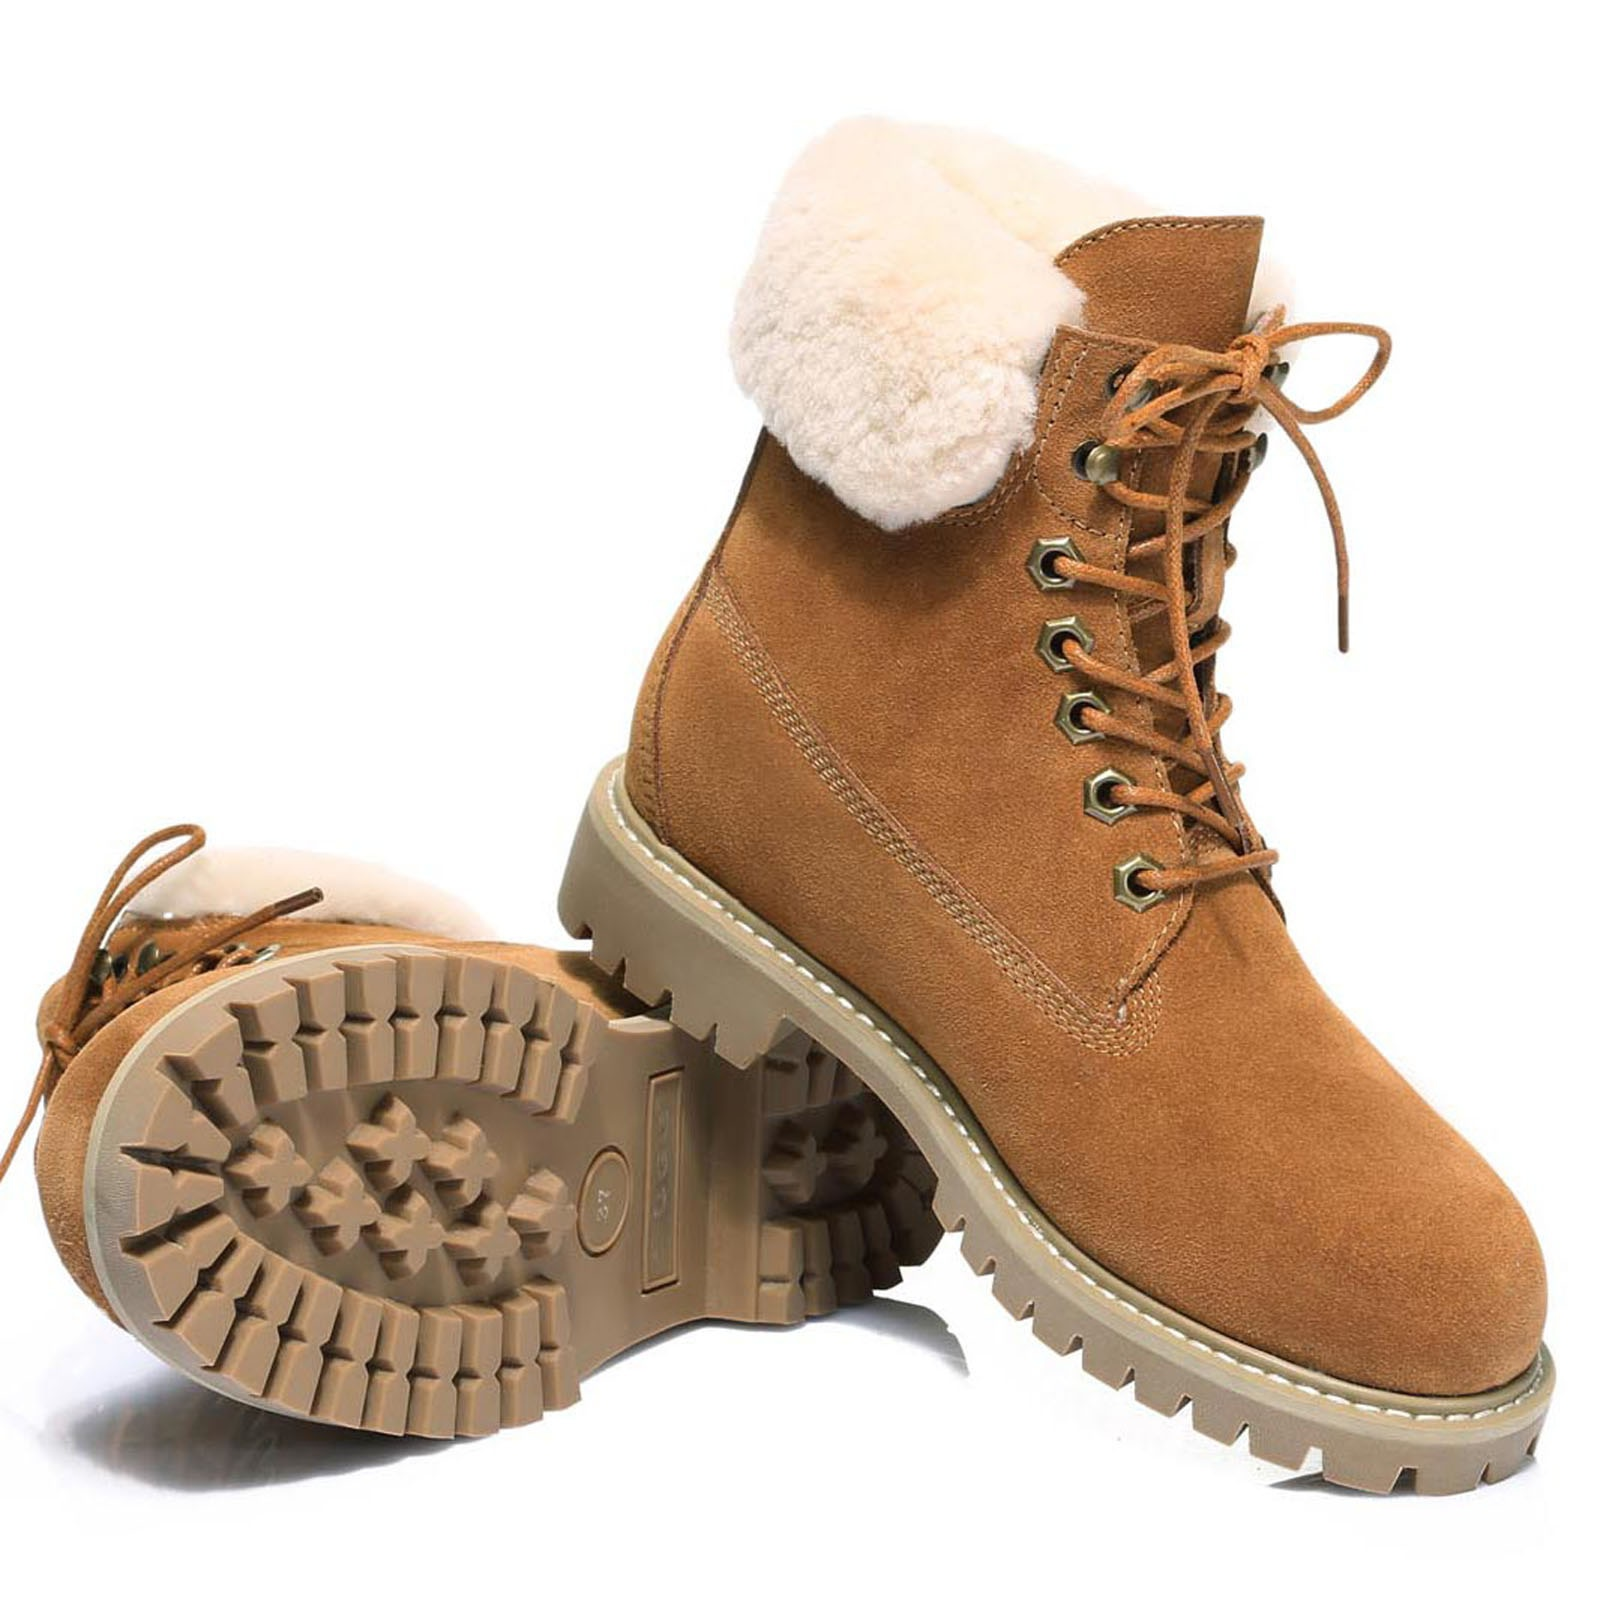 UGG-Boots-Australian-wool-Genuine-Hope-Ladies-Fashion-with-Front-Lace-lining thumbnail 9